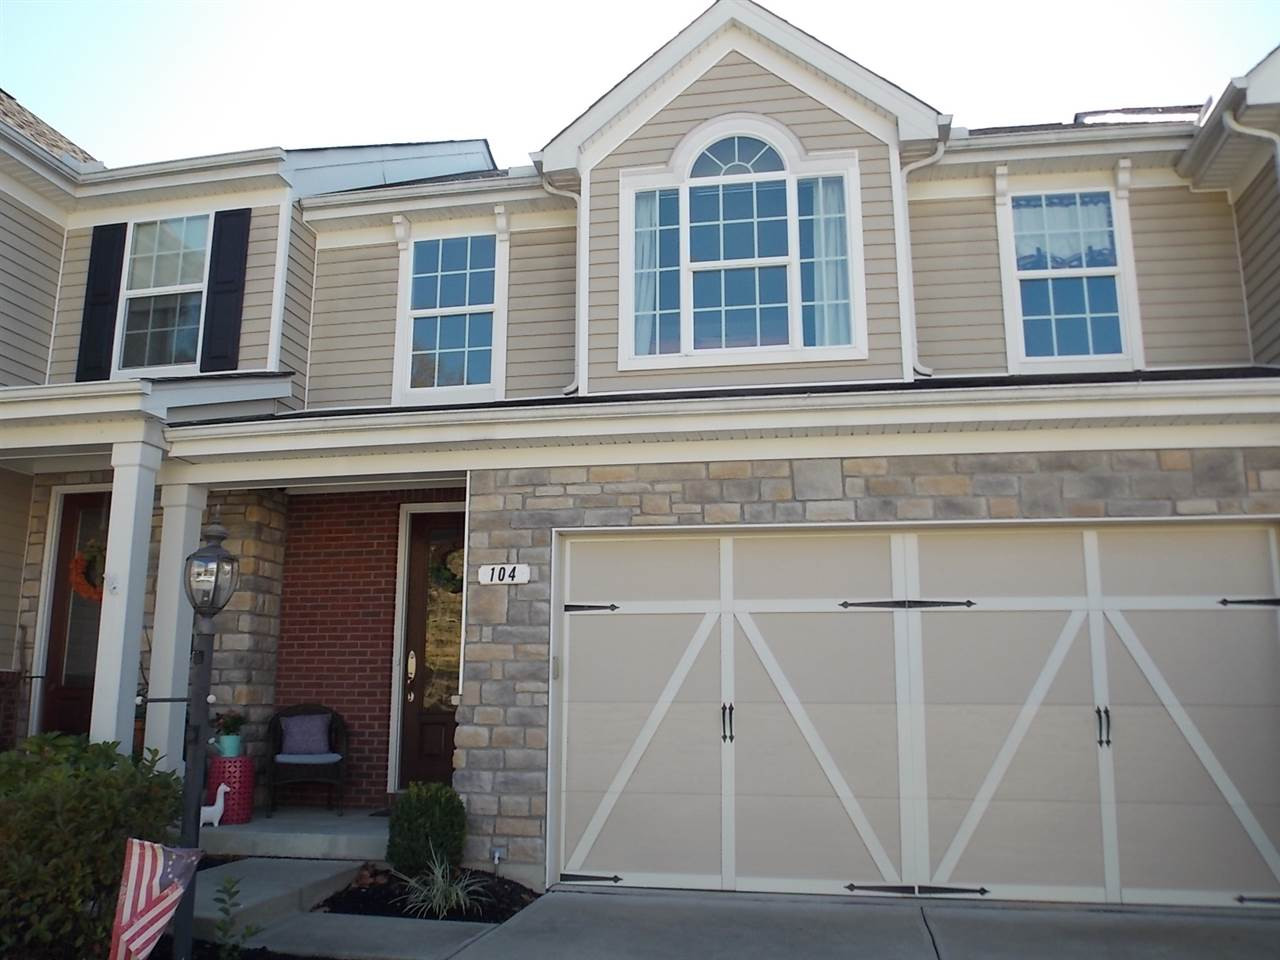 Photo 2 for 104 Plumrose Ln Fort Thomas, KY 41075